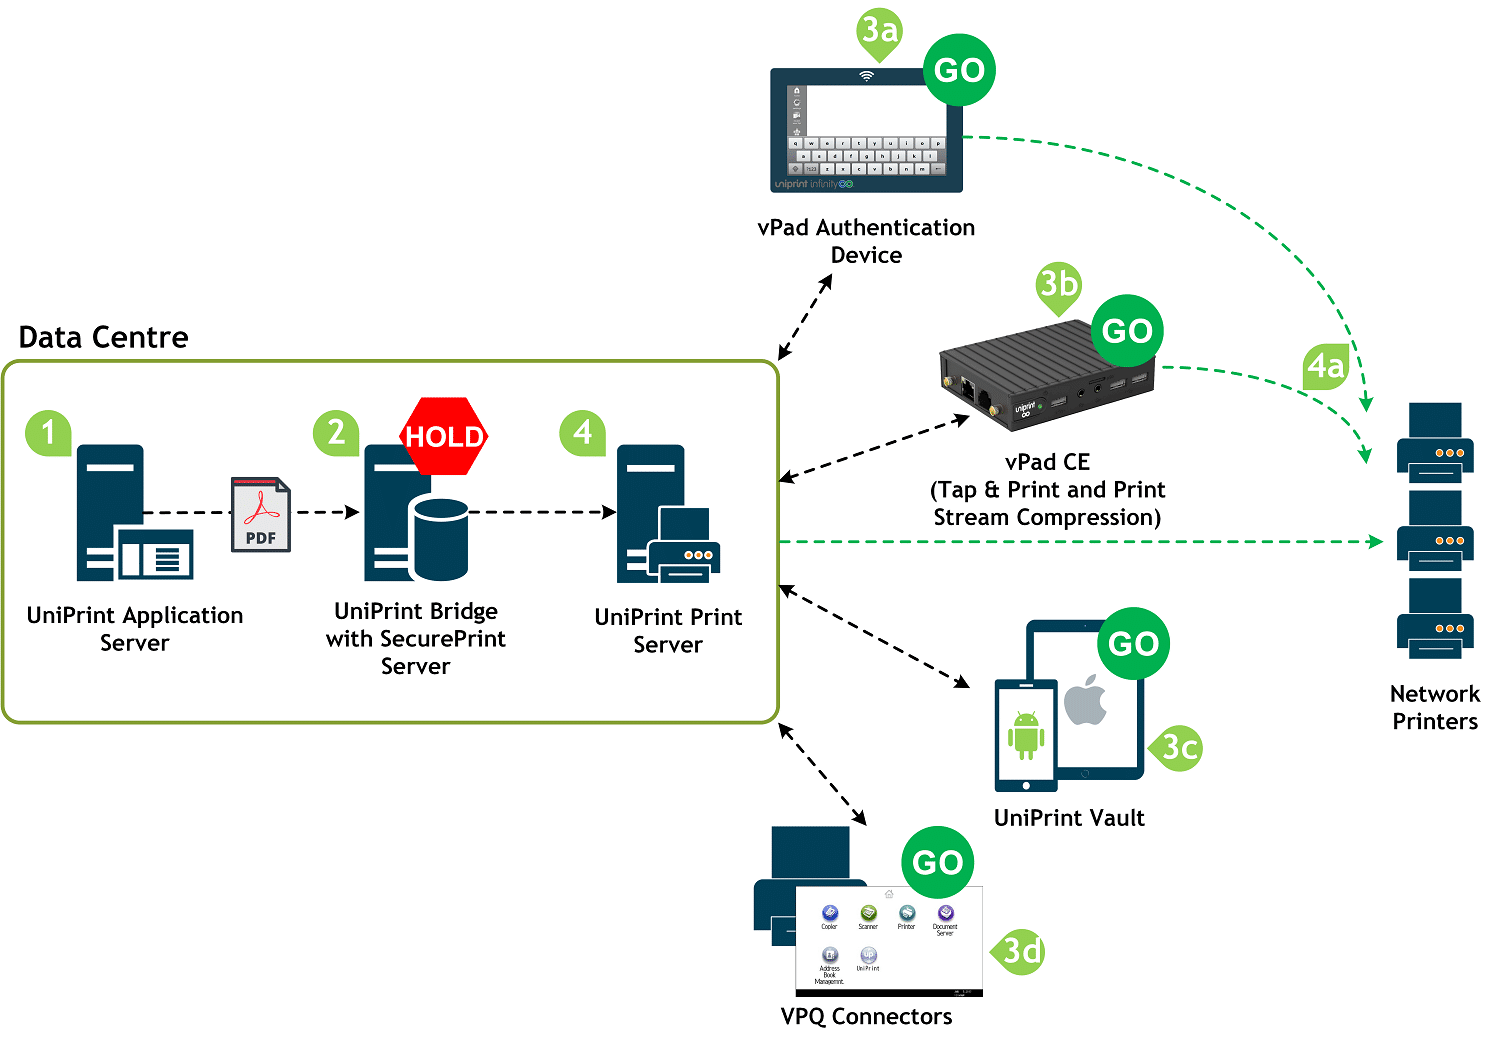 UniPrint Infinity Secure Pull Printing Diagram